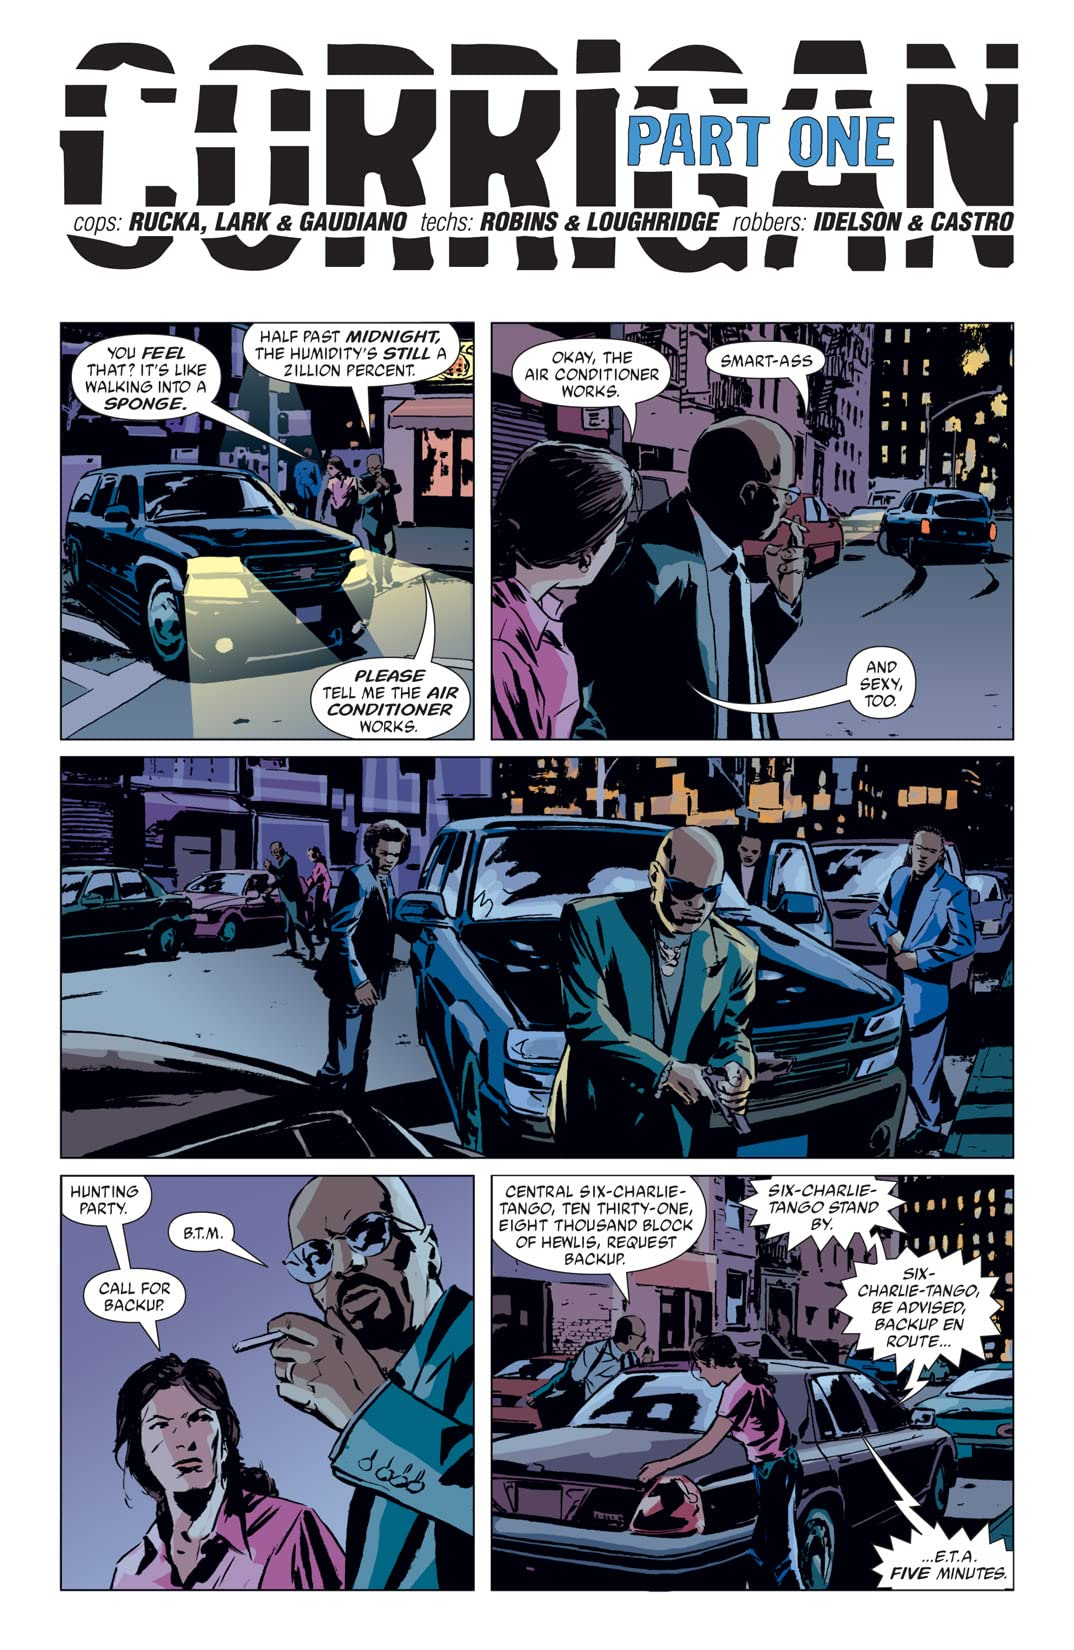 Gotham Central #23